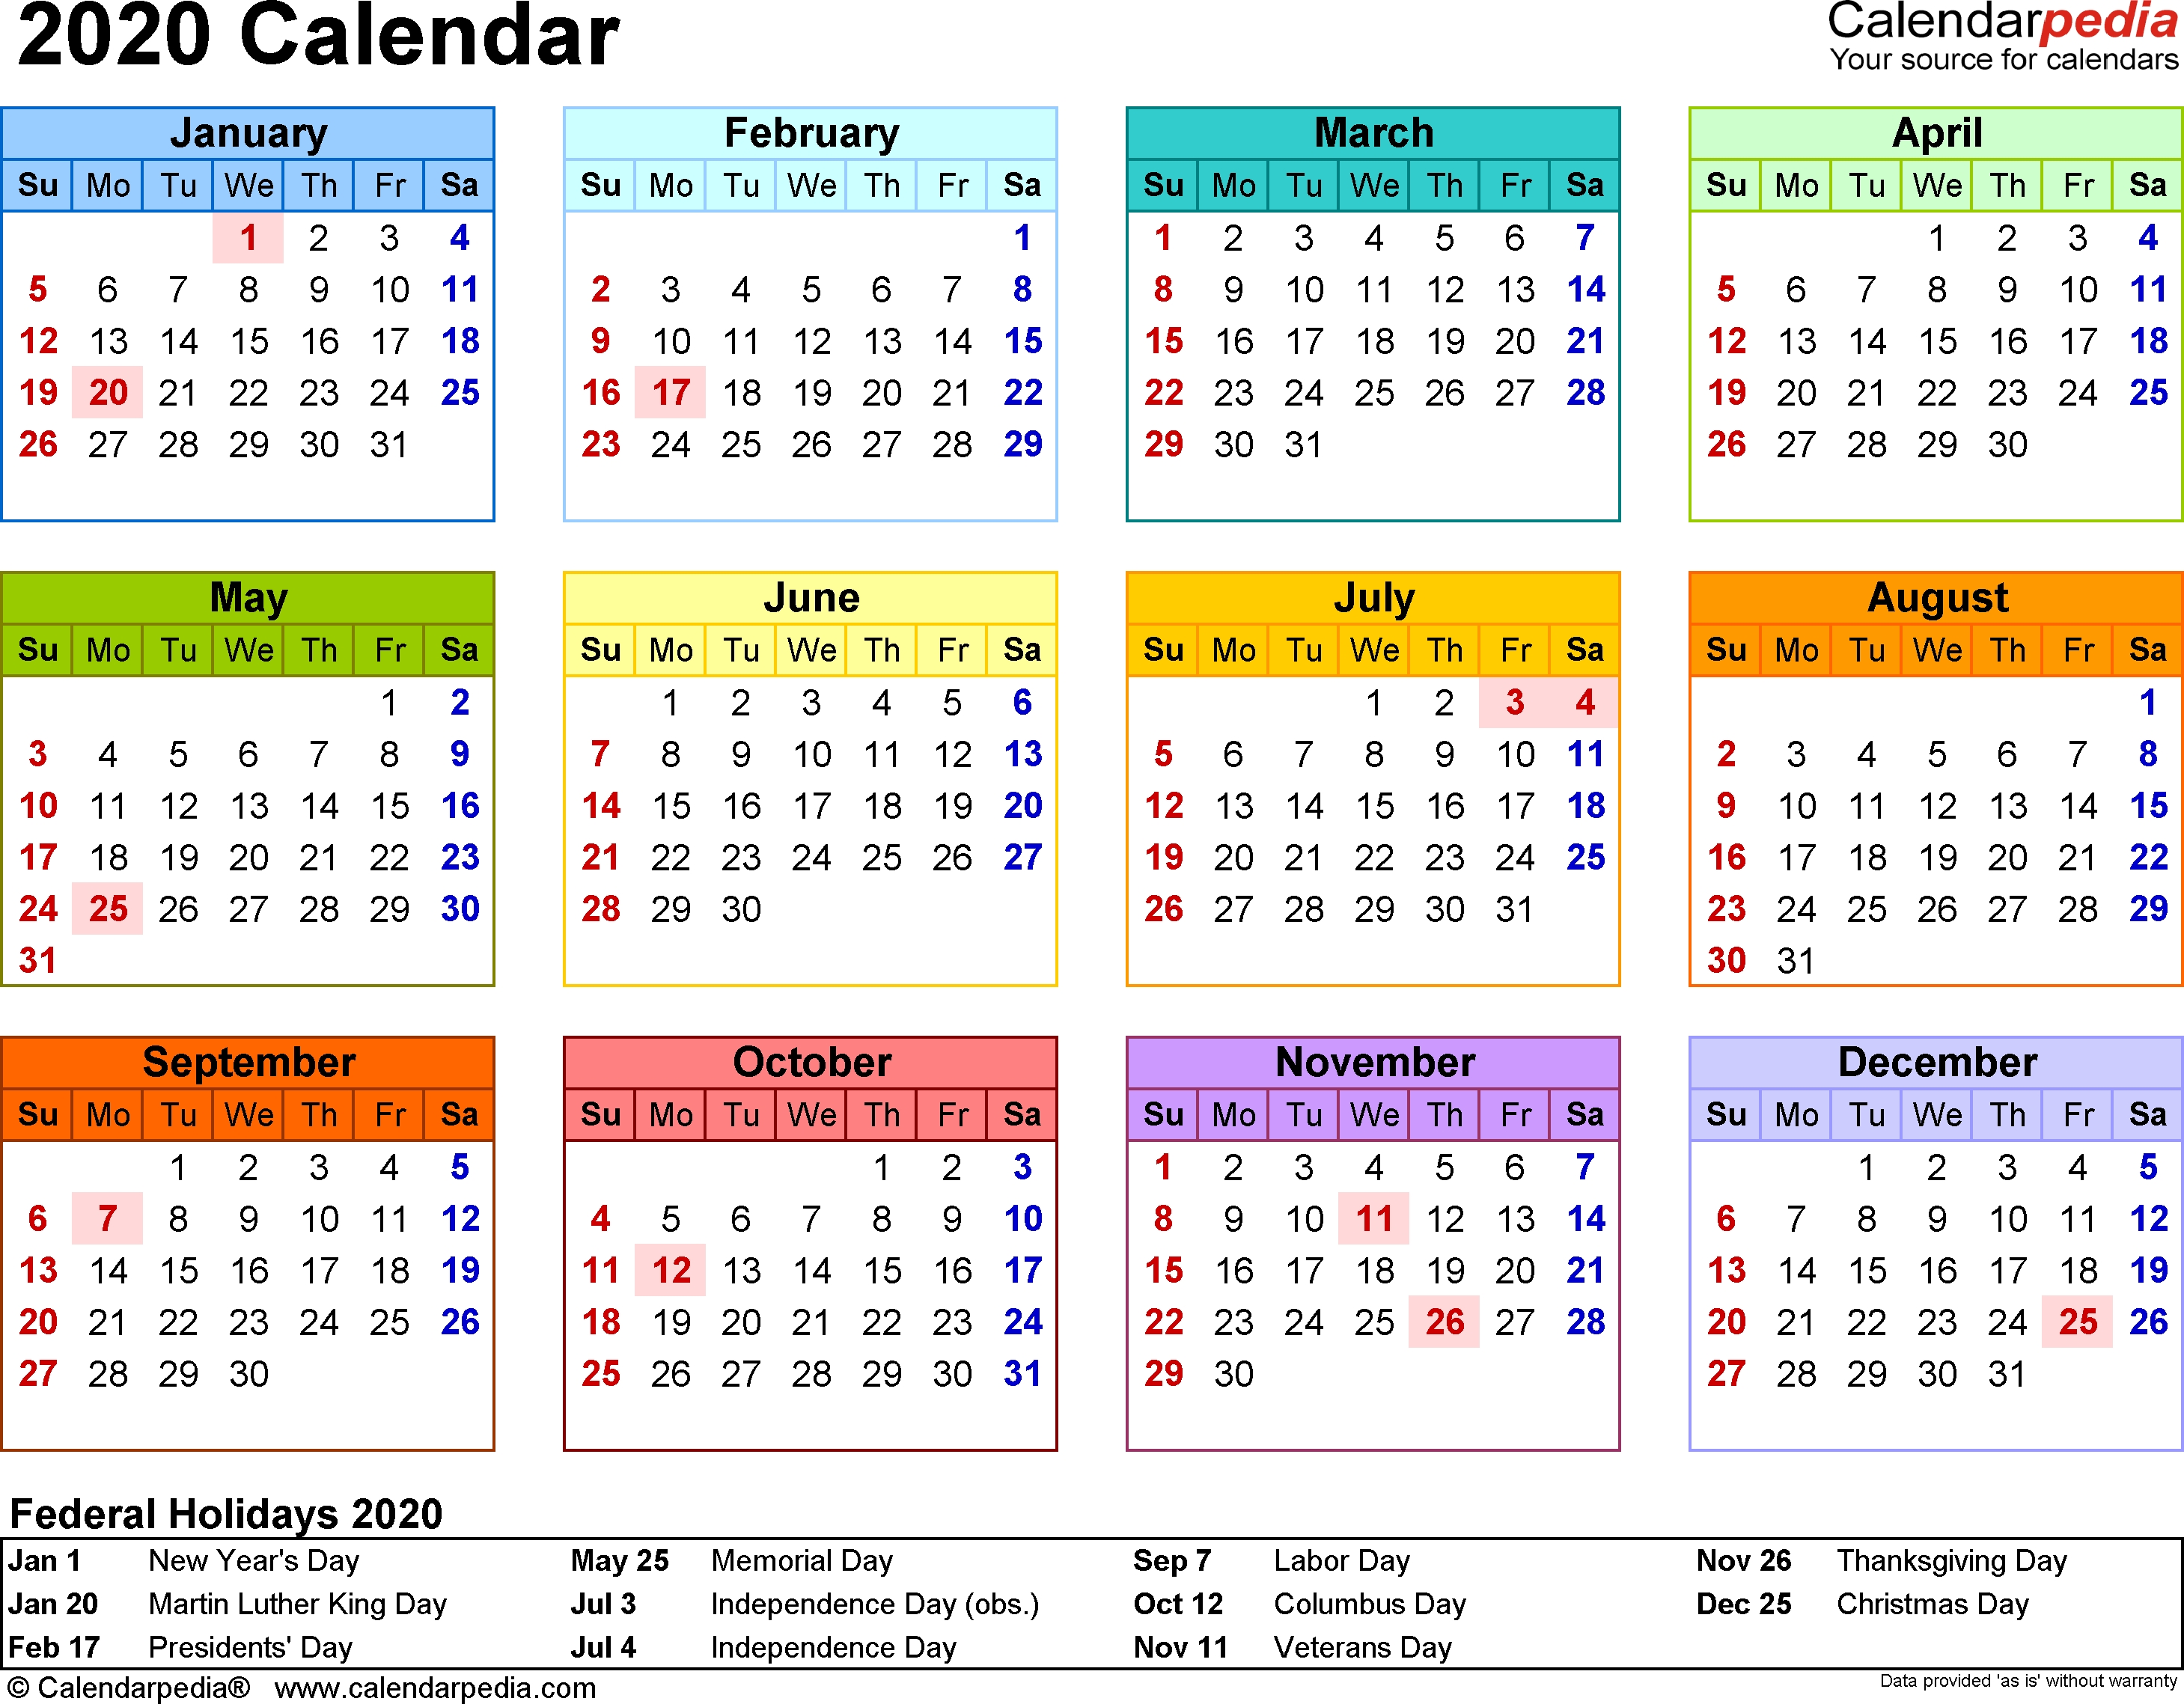 Template 8: 2020 Calendar For Word, Year At A Glance, 1 Page